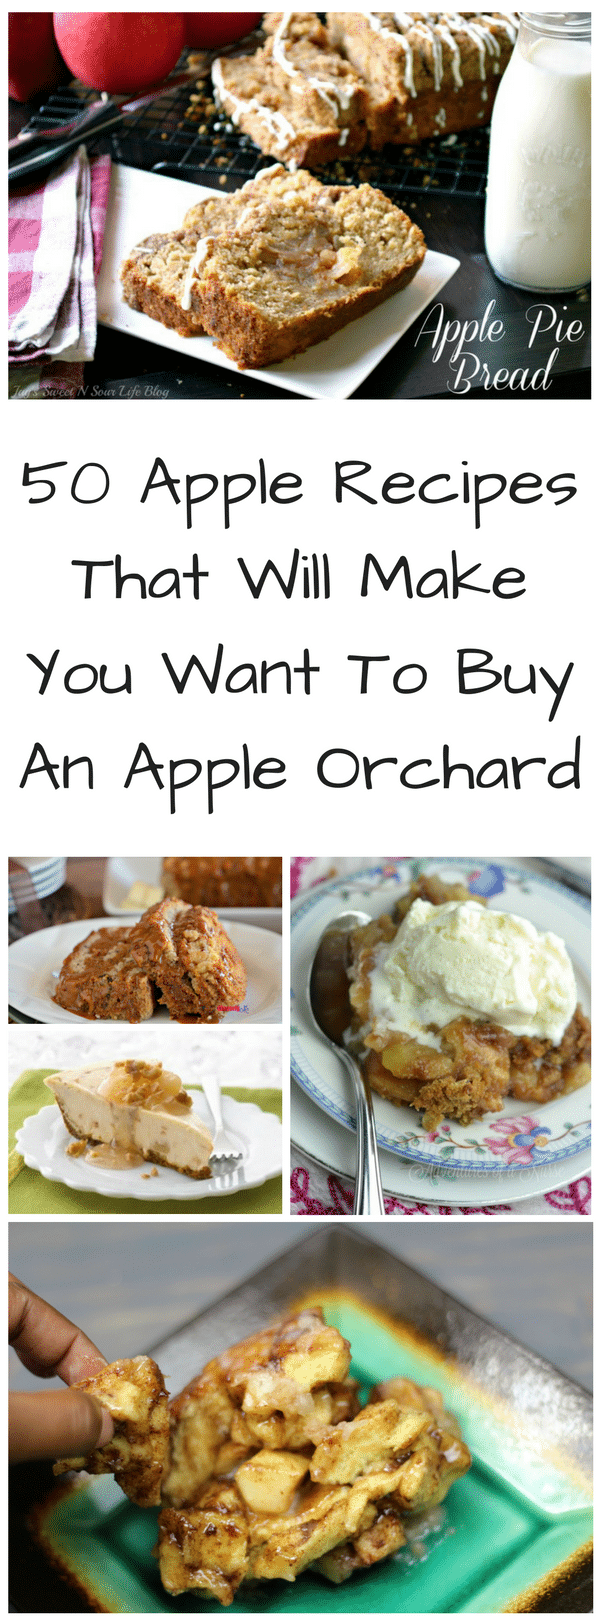 50 Apple Recipes That Will Make You Want To Buy An Apple Orchard